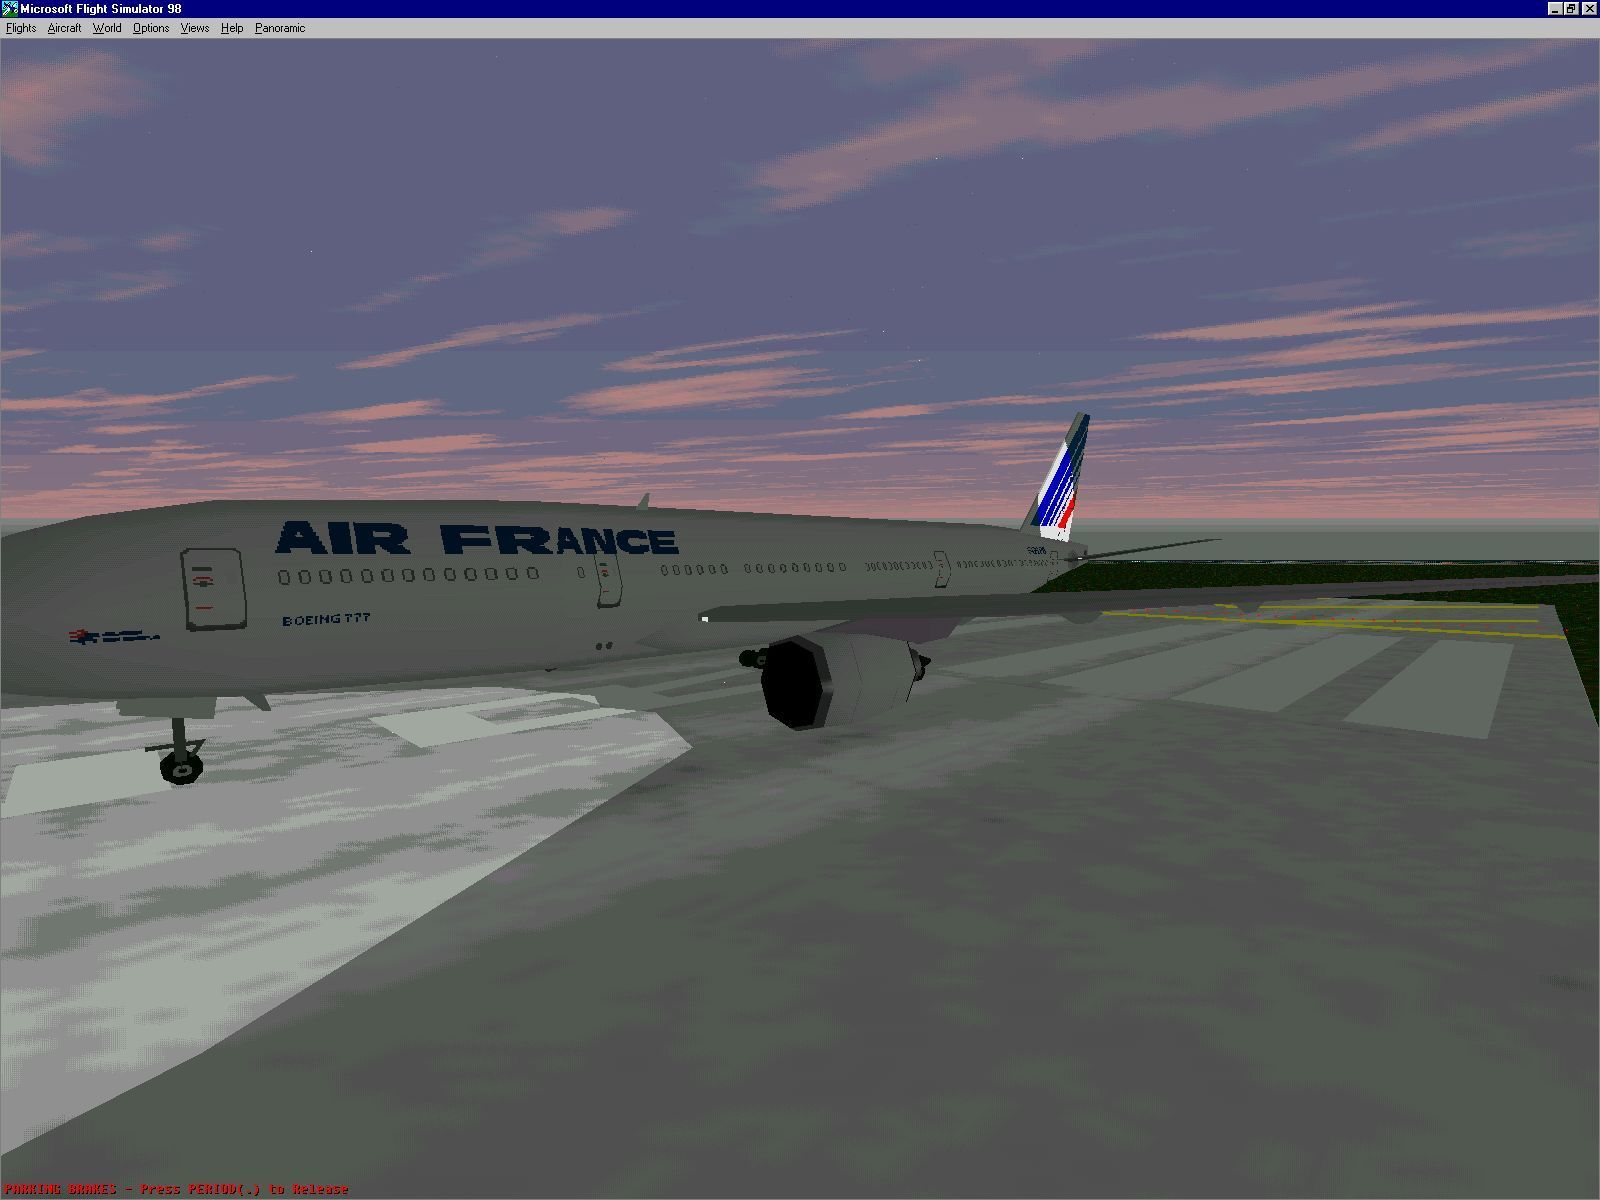 The Air France Plane On The Runway At Dusk. The Navigation Lights Are On.  The The Anti Collision Lights Do Flash Though This Is Not Shown Here.